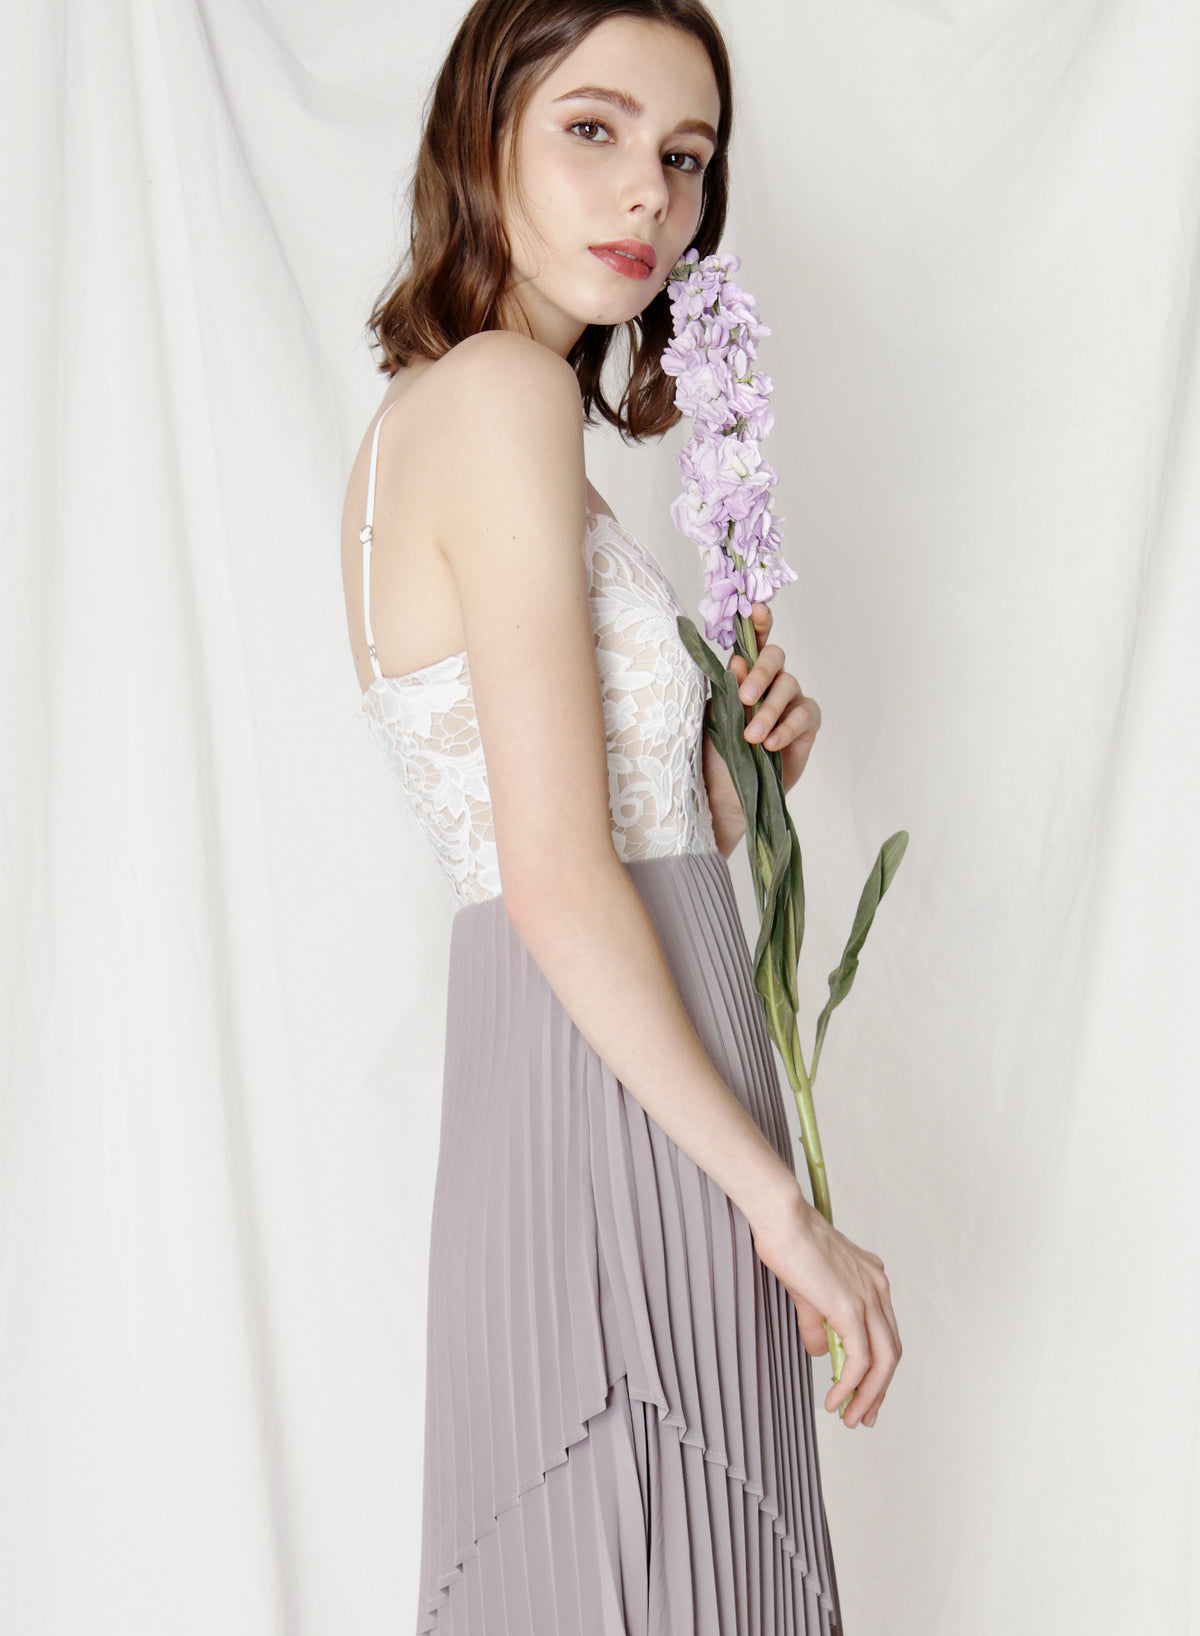 Finesse Uneven Pleats Dress (Lilac Grey) at $ 44.50 only sold at And Well Dressed Online Fashion Store Singapore